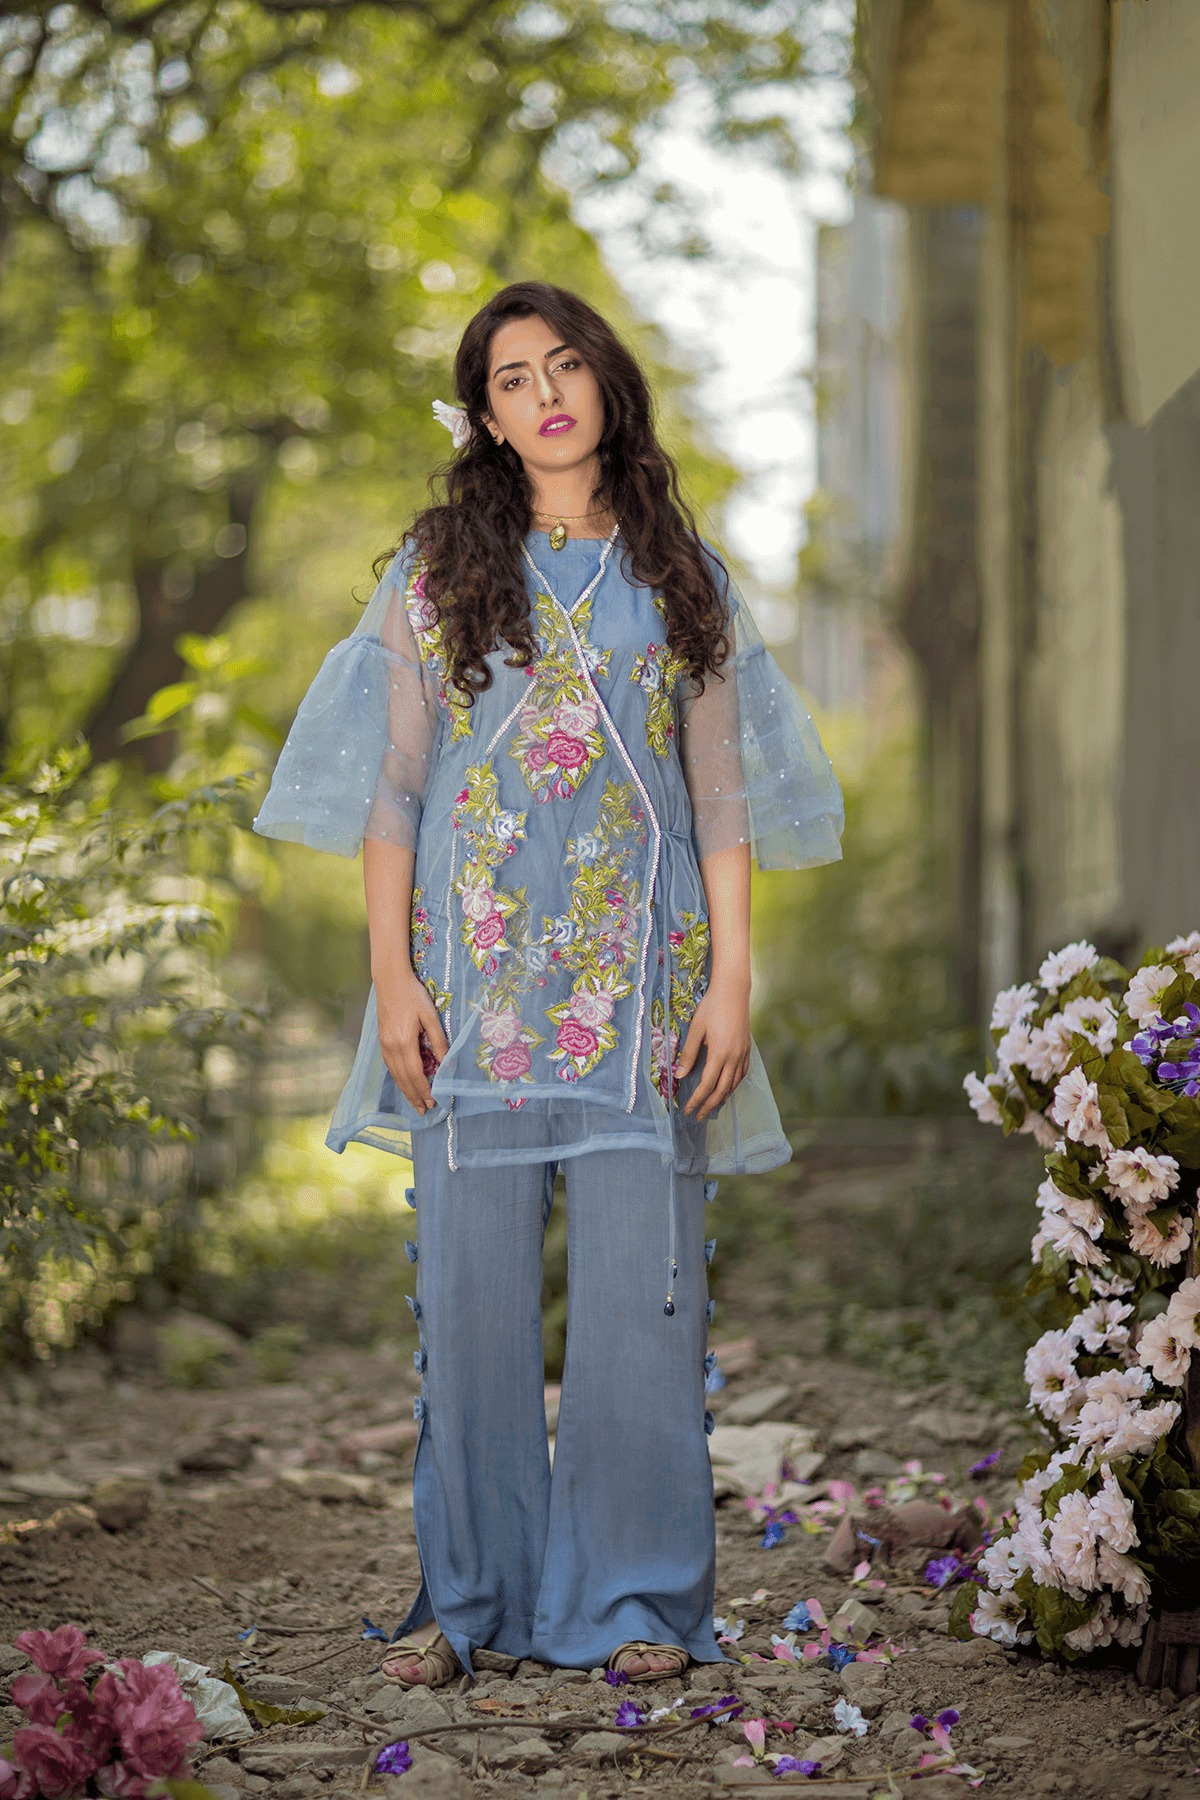 Cute Lahori Ink Semi Formal Eid Dresses Designs Collection 2017-18 (4)